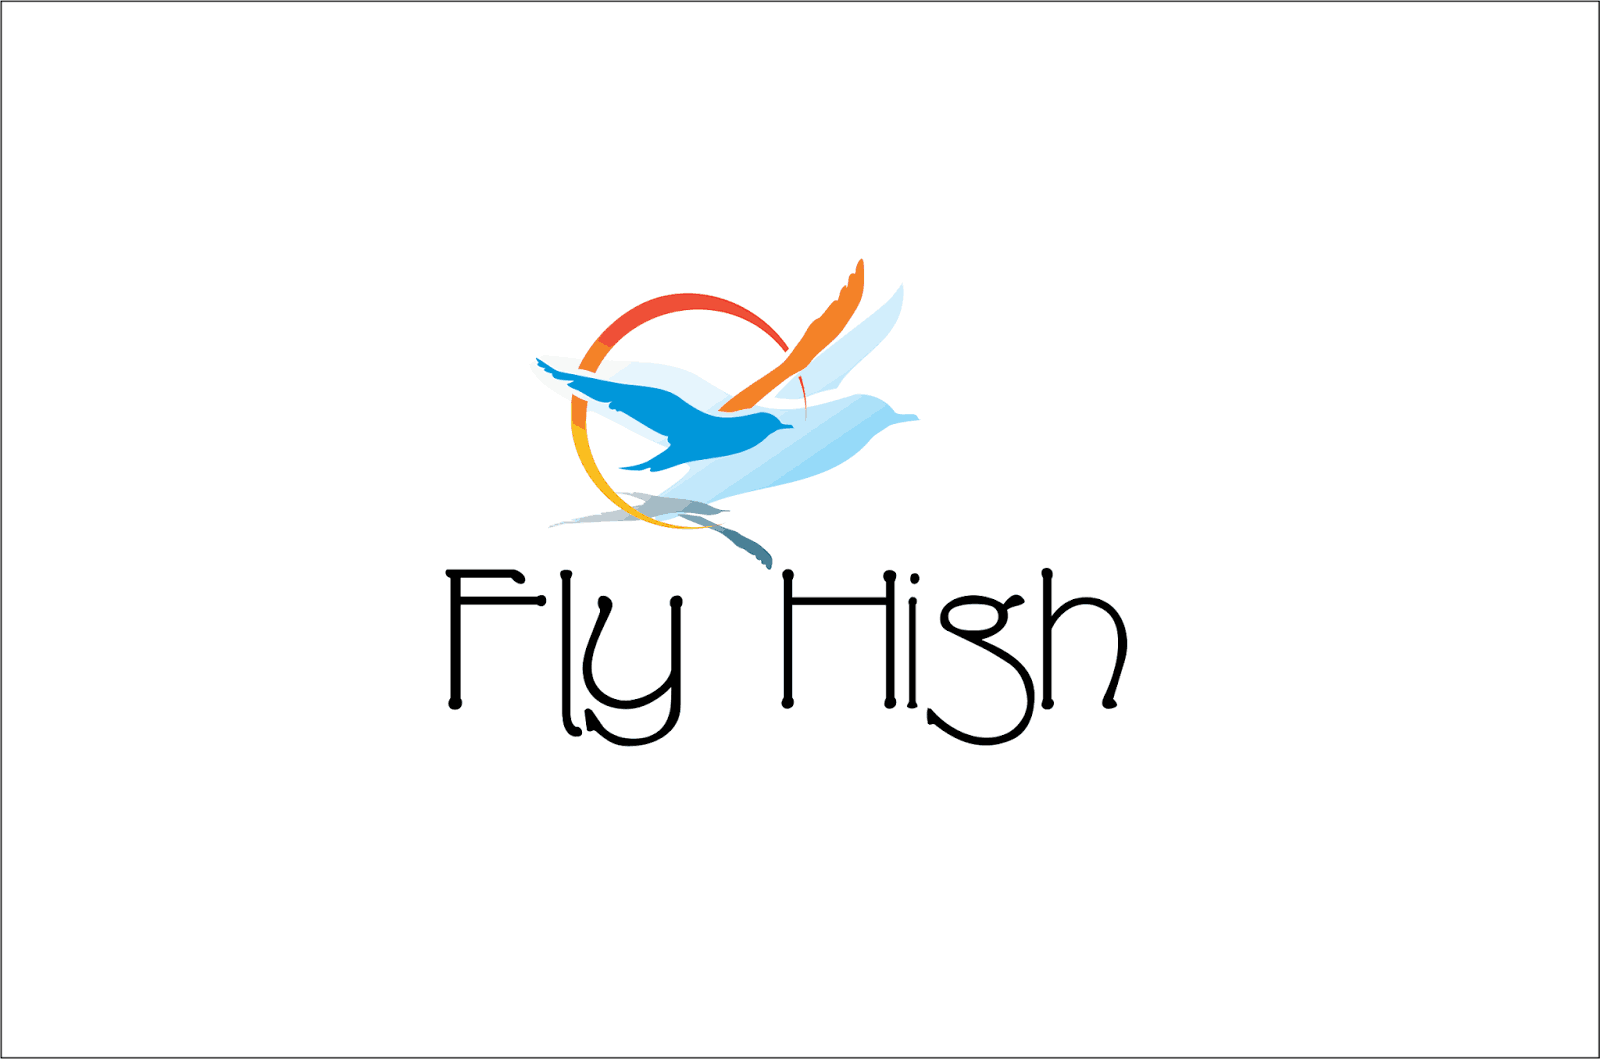 25 Good Airlines Business Names With Logos | Brandyuva